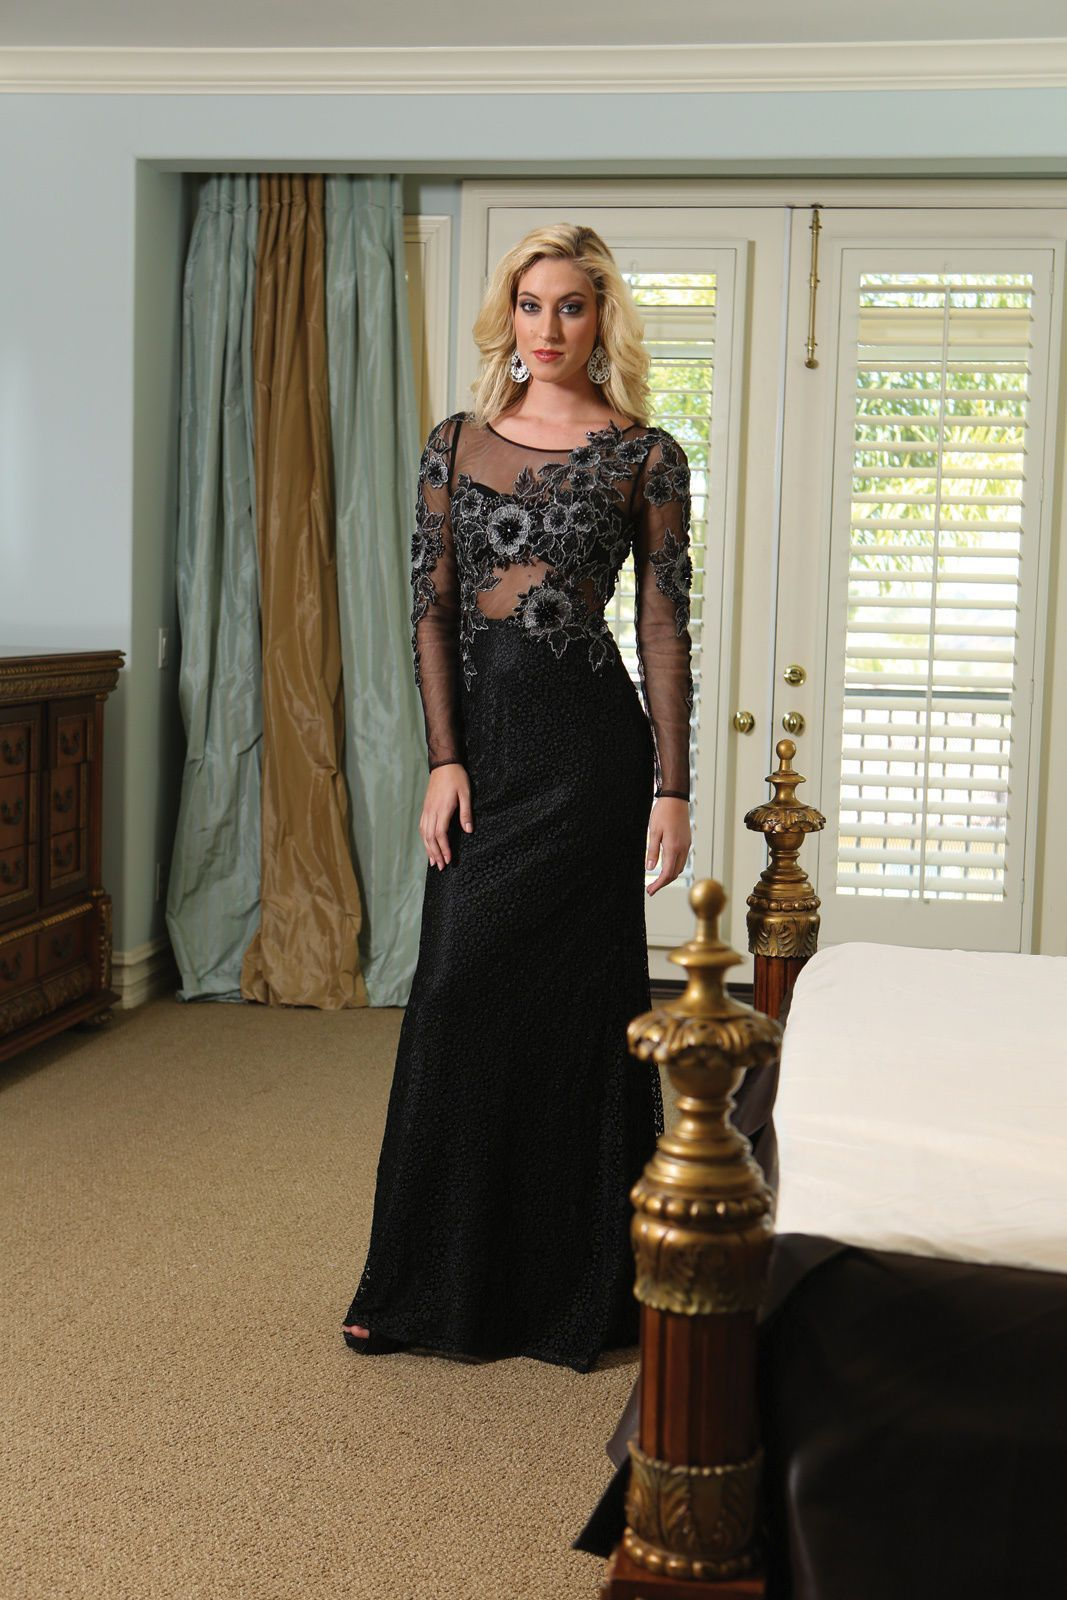 Thedressoutlet homecoming elegant applique rhinestone plus size